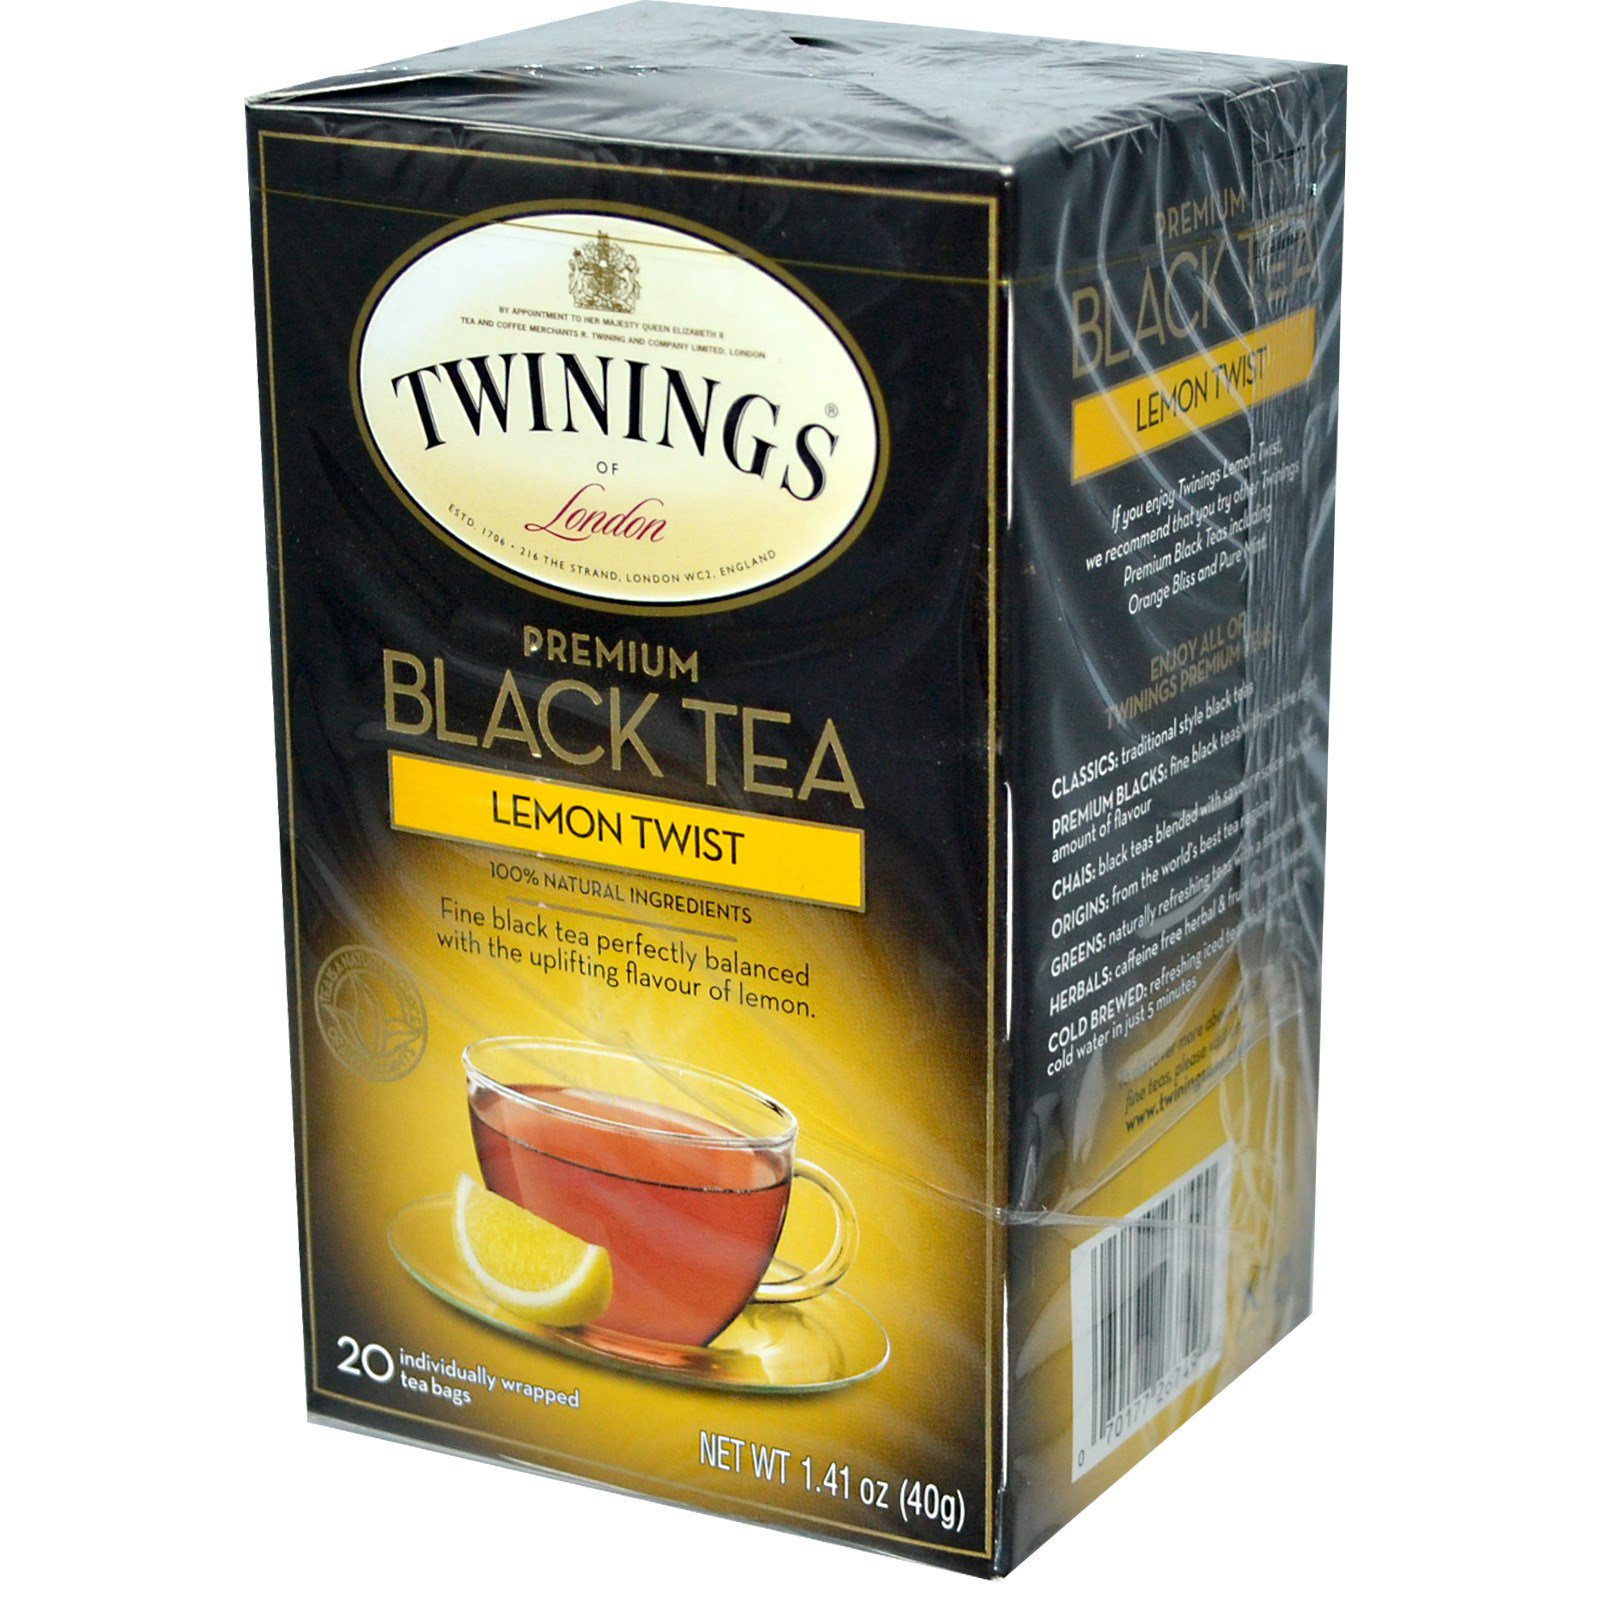 Twinings Premium Black Tea Lemon Twist 20 Bags 1 41 Oz